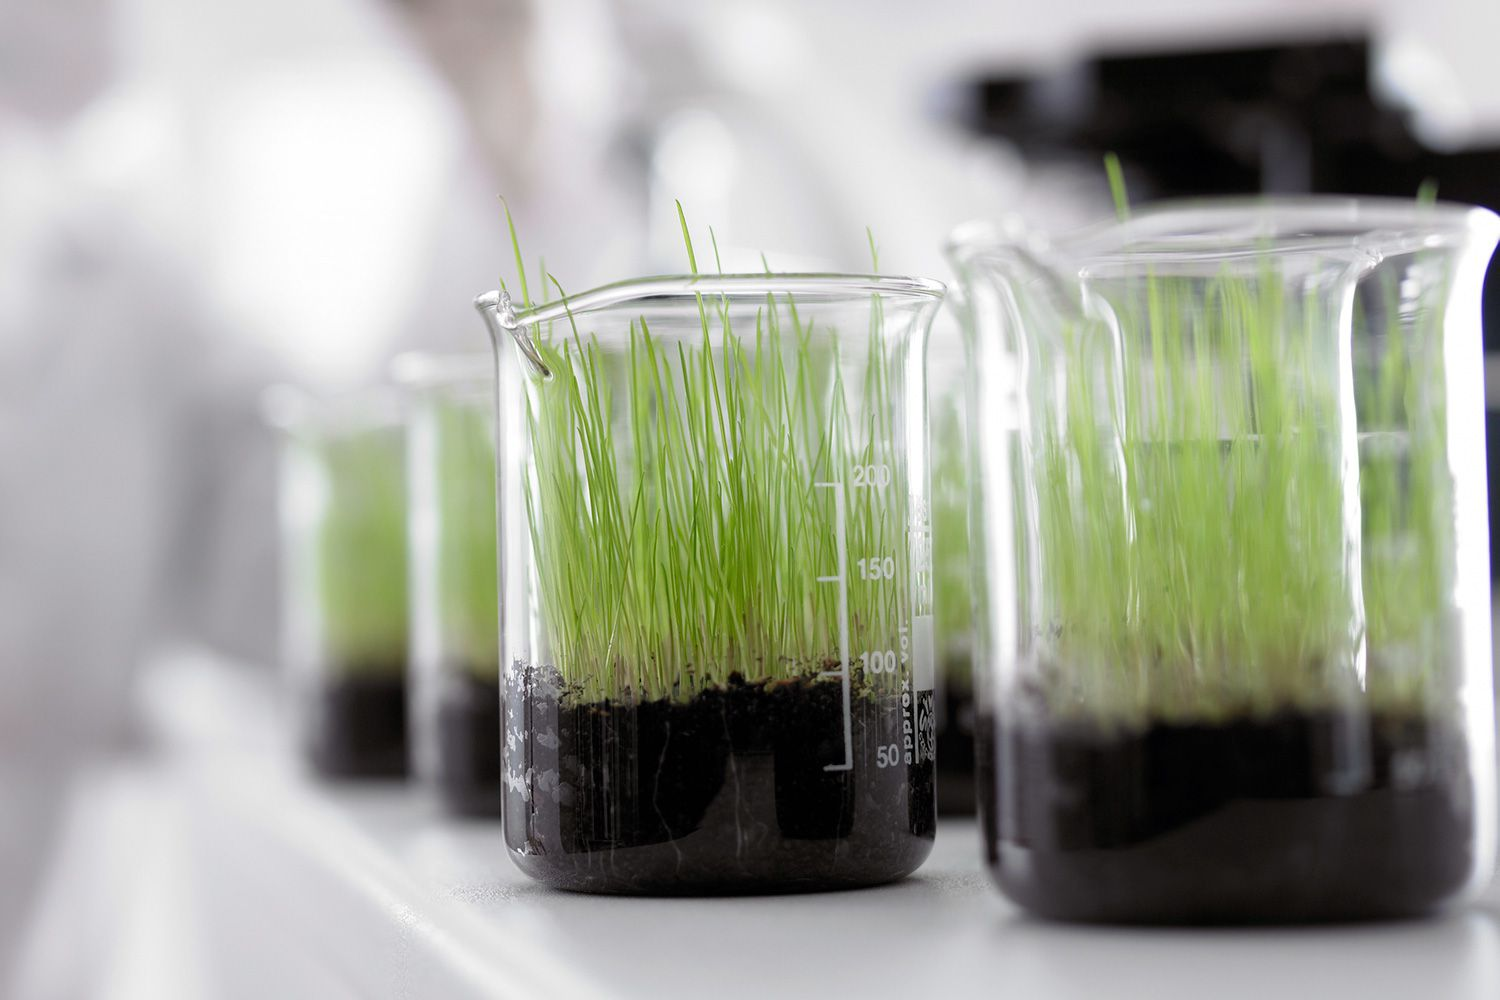 Using Plants in Science Experiments - List of Ideas